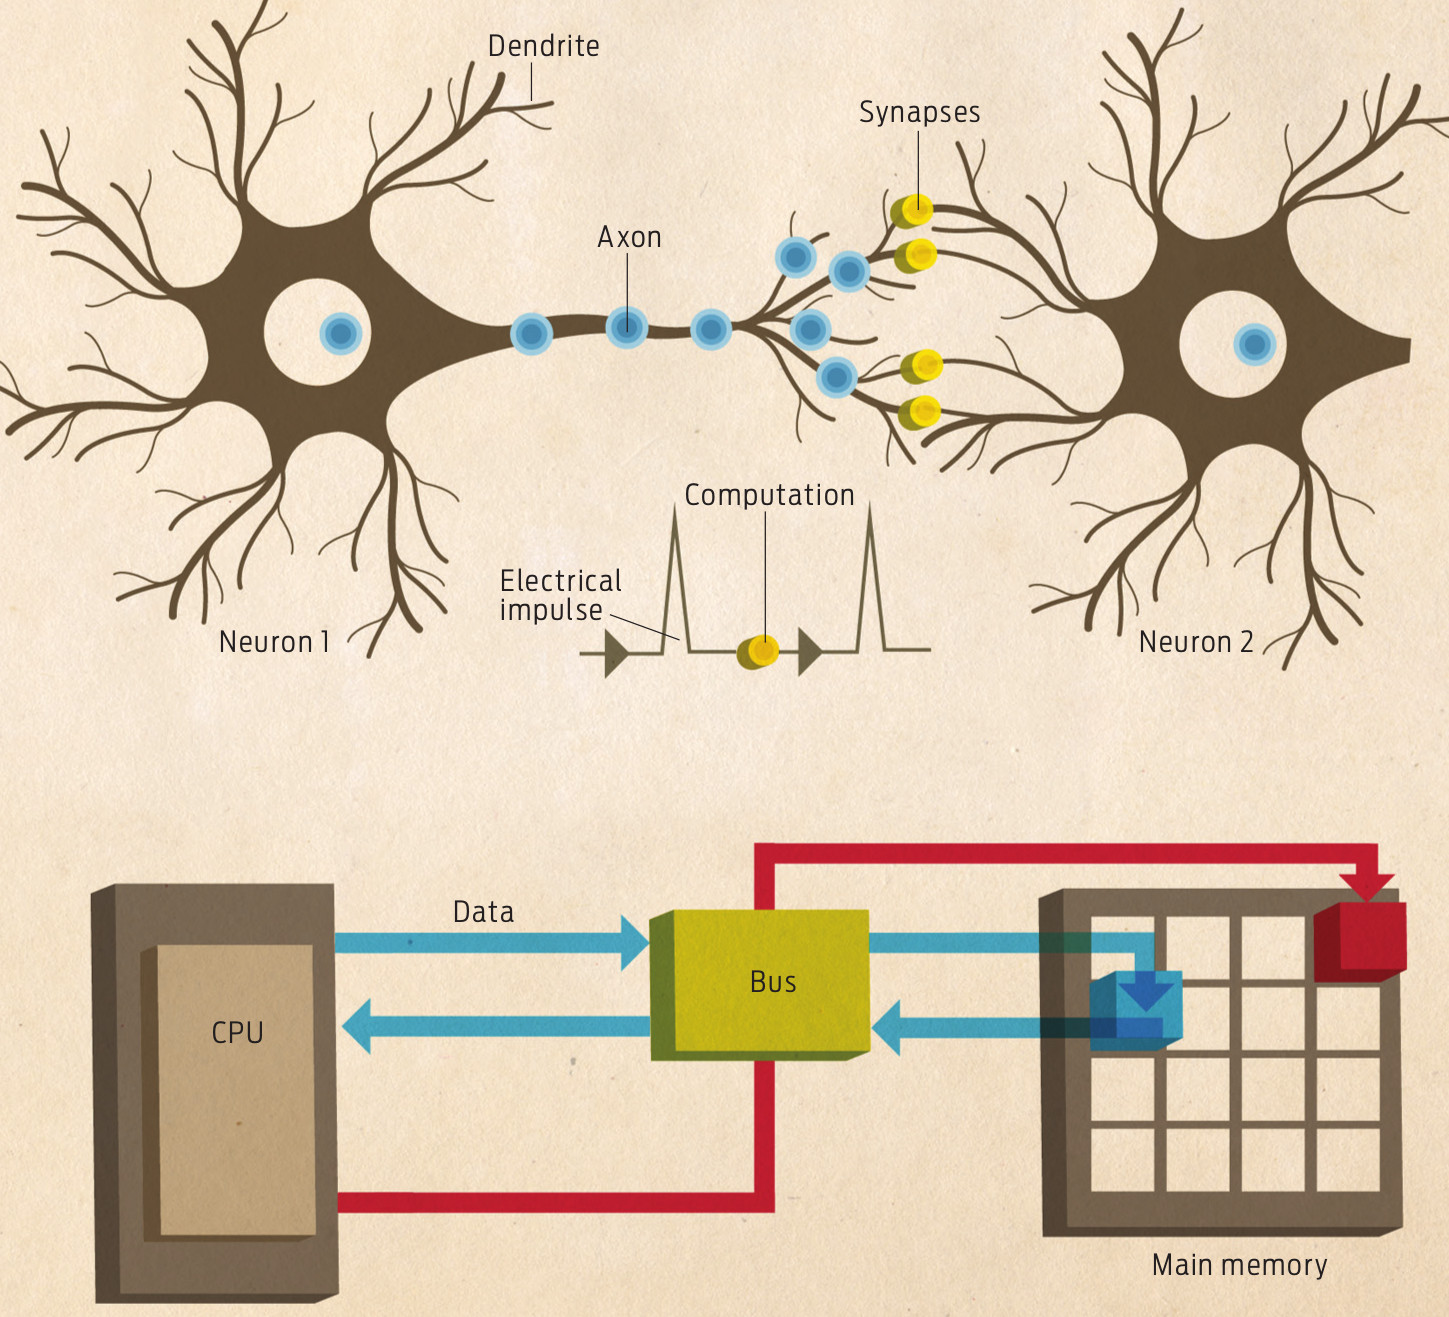 computer and neural system architecture